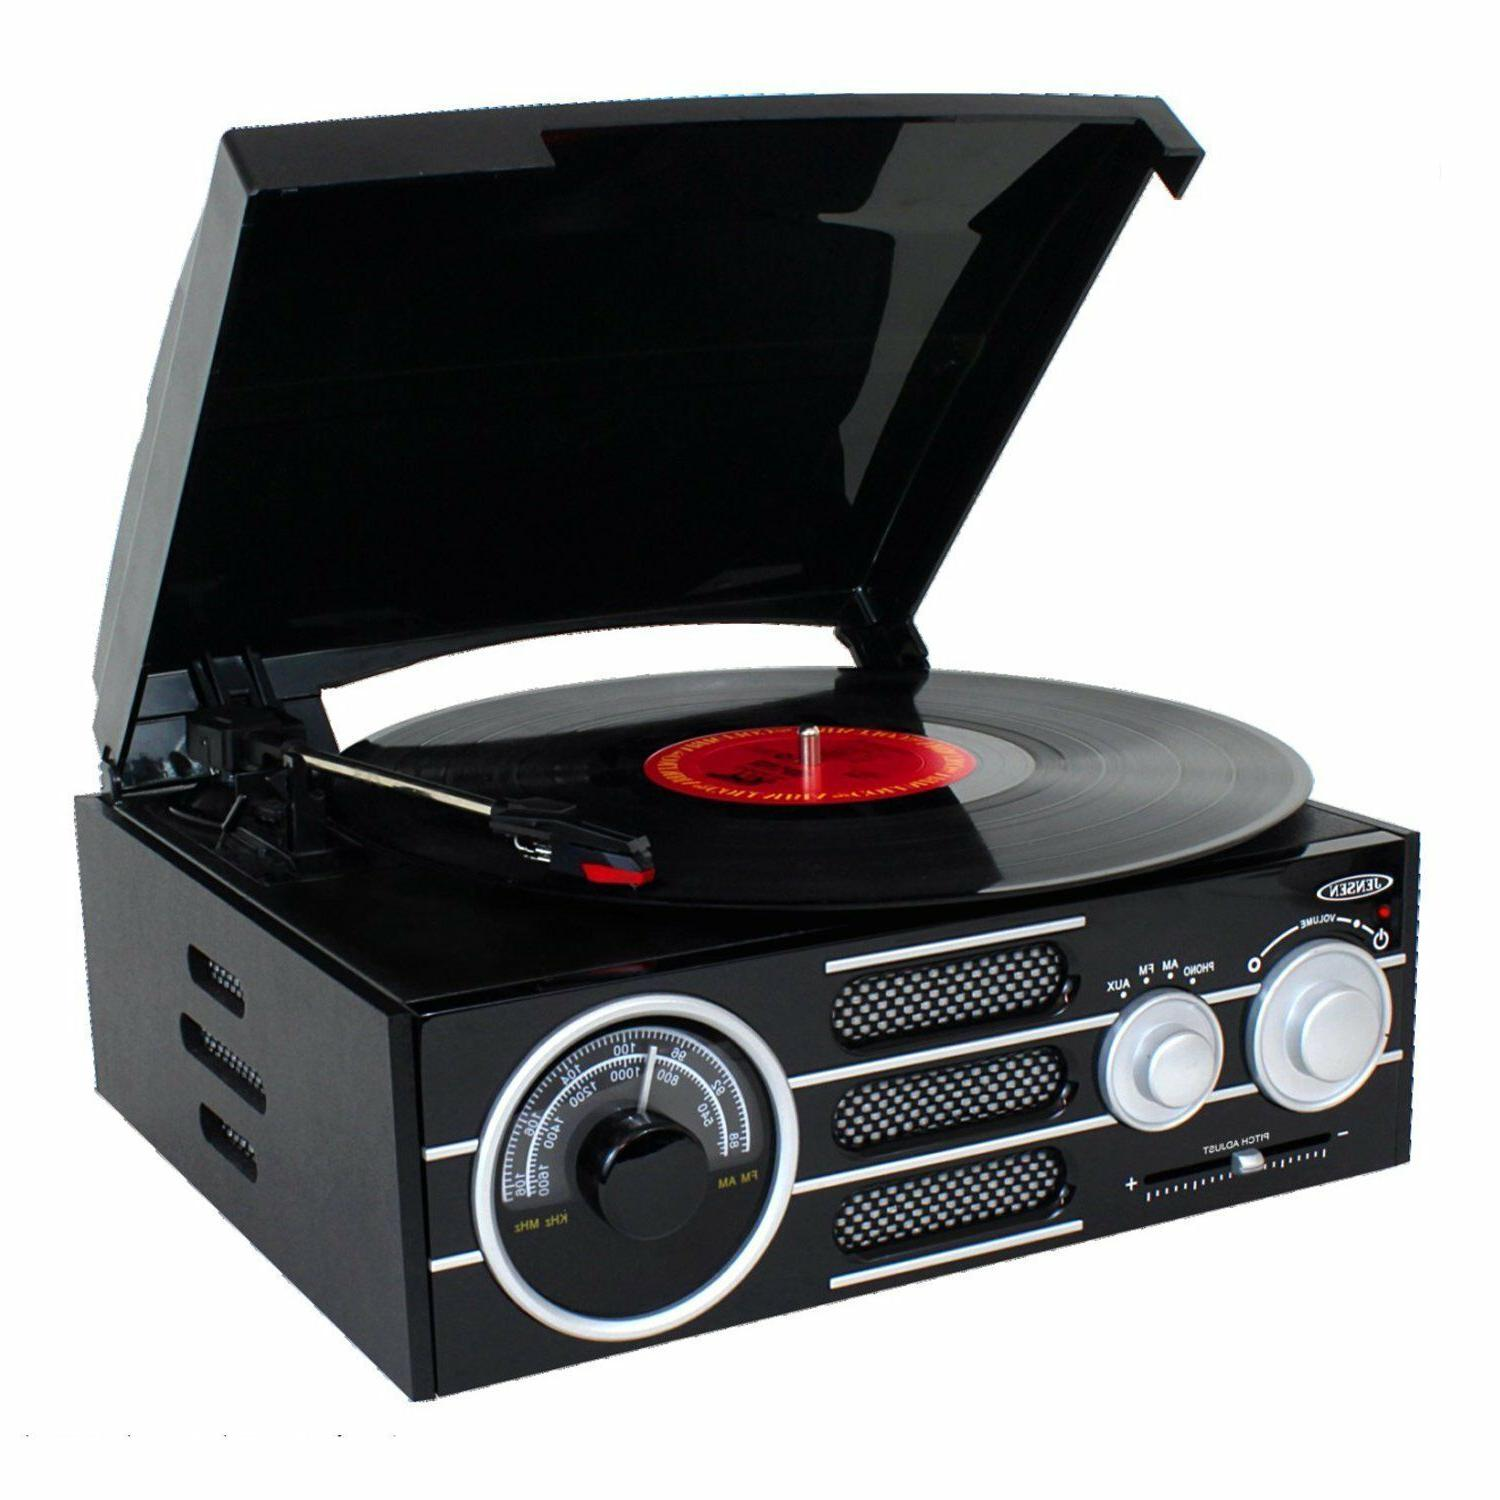 new 3 speed record player stereo turntable